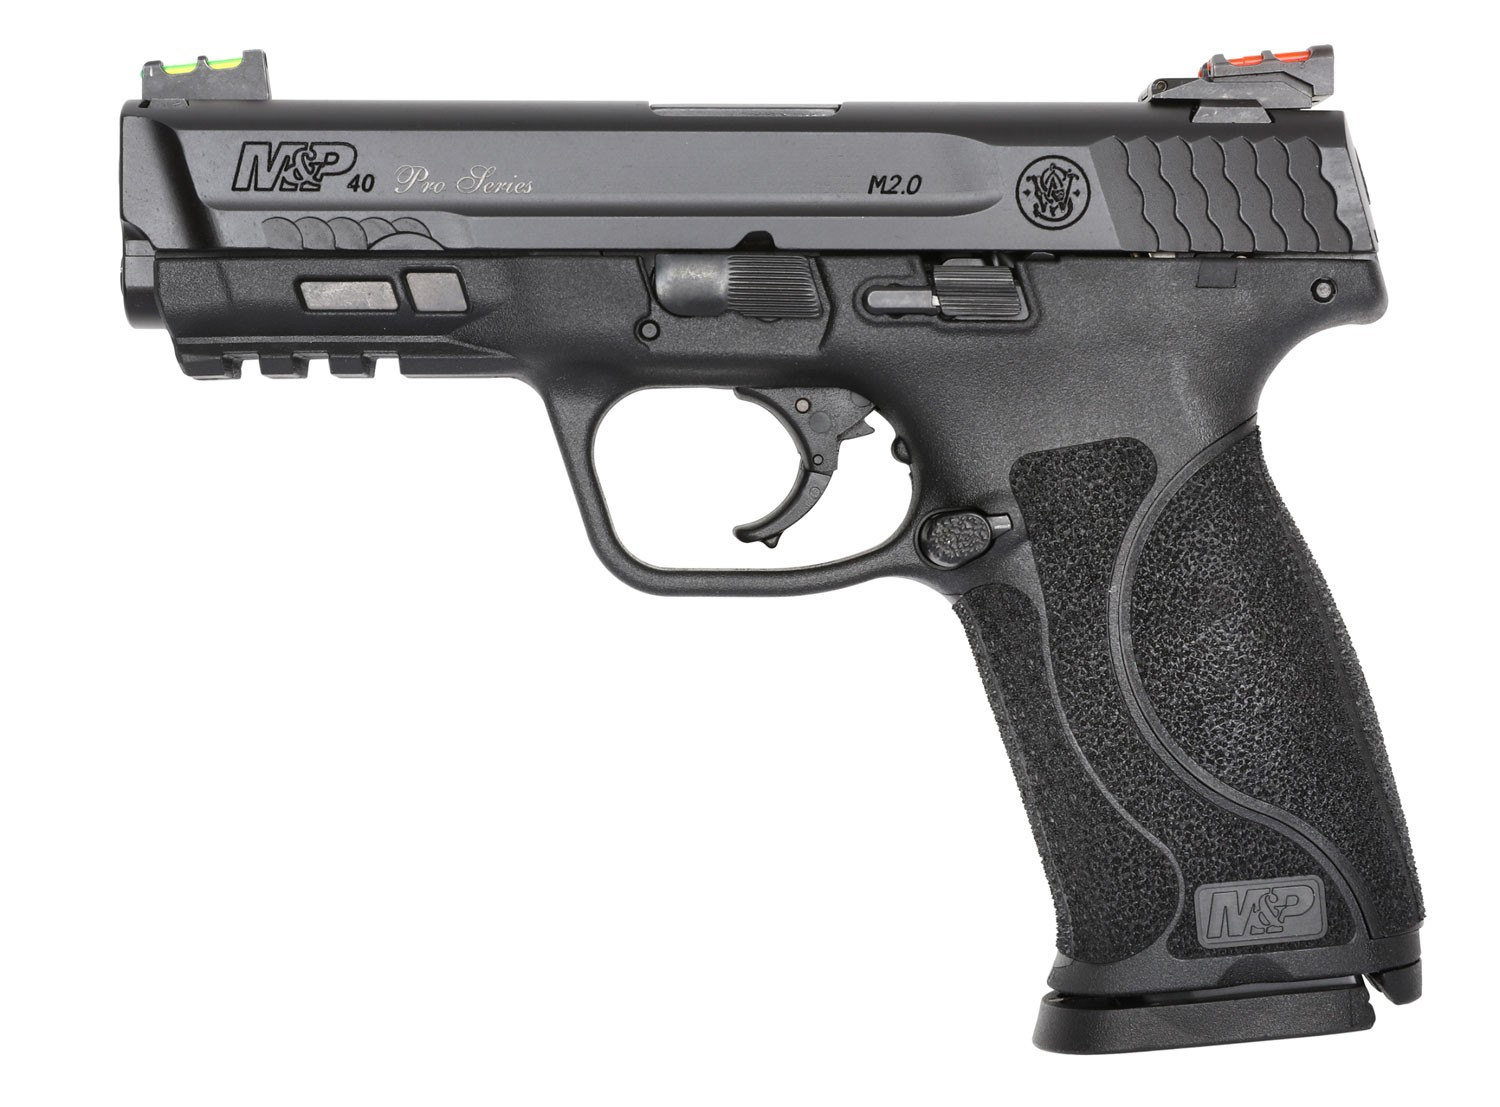 Smith & Wesson 11819 M&P 40 Performance Center M2.0 40 S&W 4.25in. 15+1 Black Armornite Stainless Steel Black Synthetic Grip